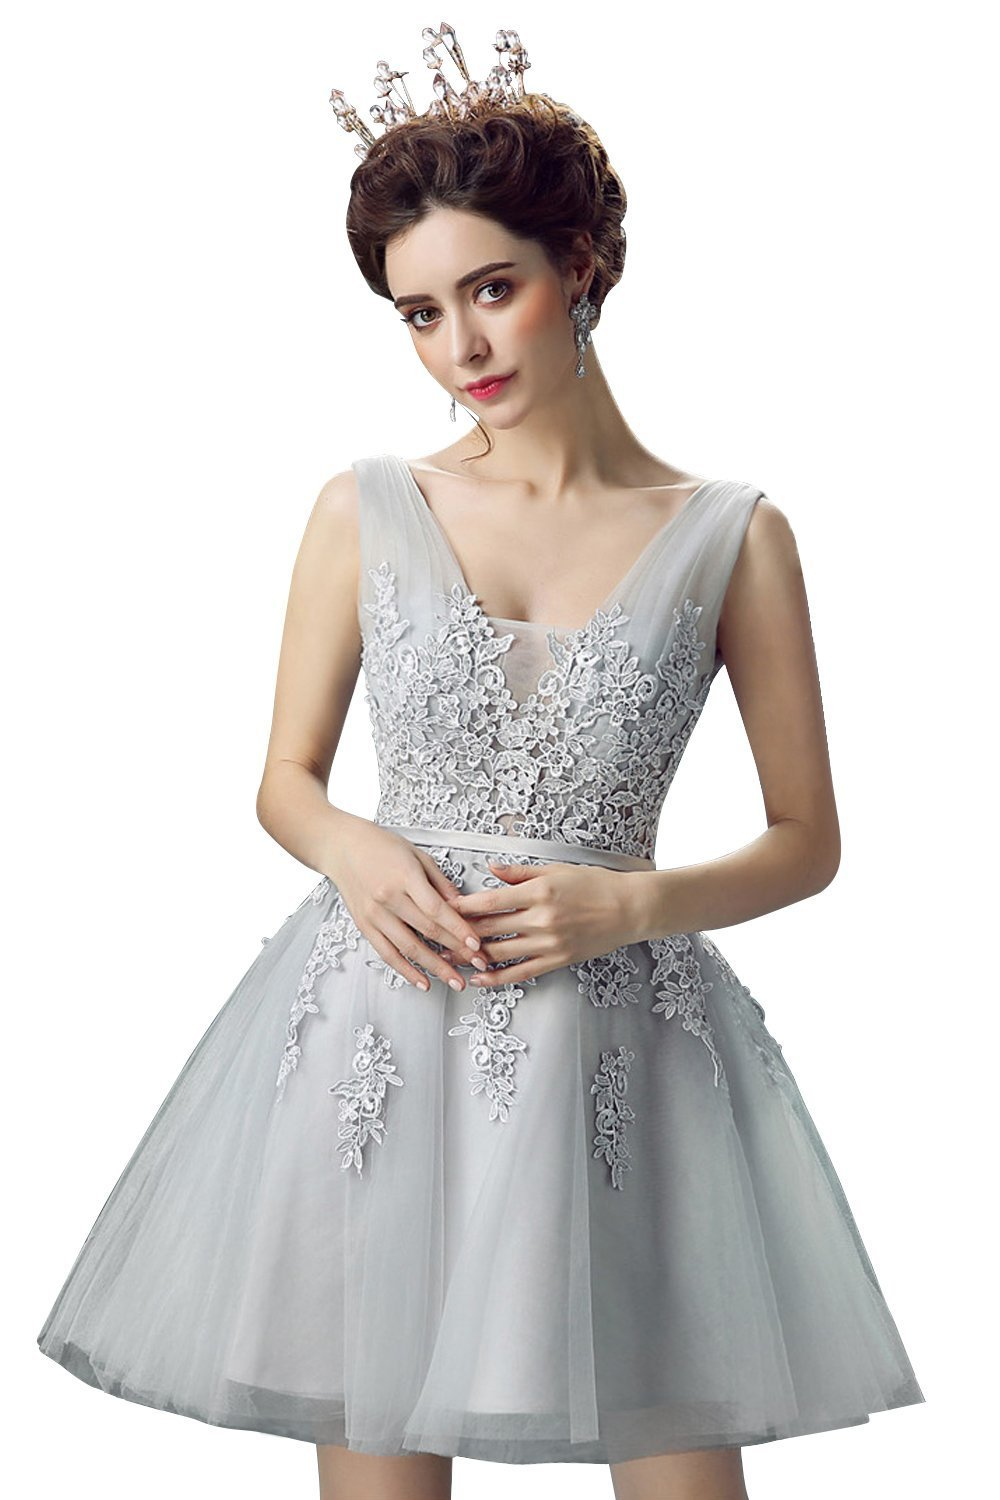 Women's Tulle Lace Applique Junior's Formal Cocktail Gowns Homecoming Dresses